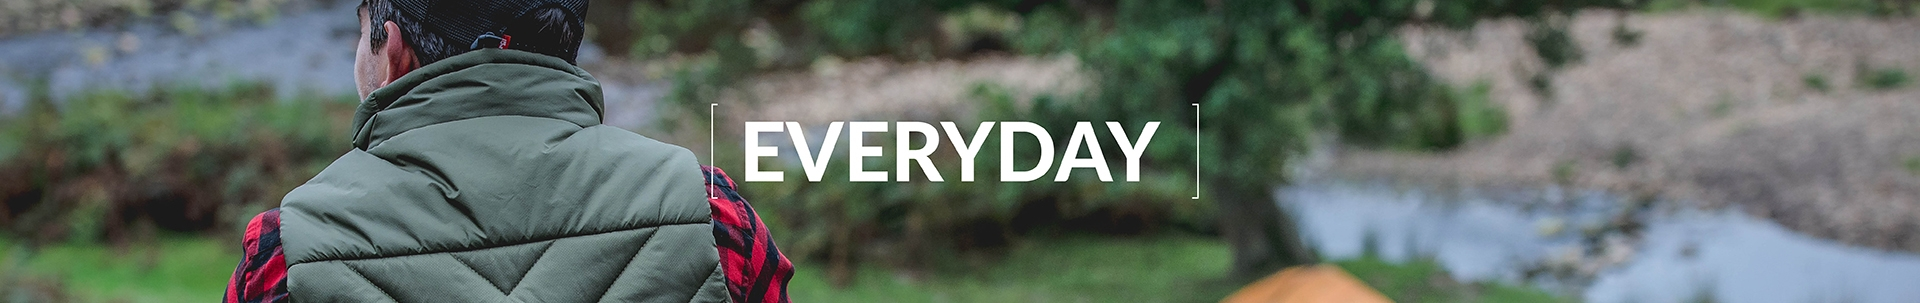 Activity - Everyday